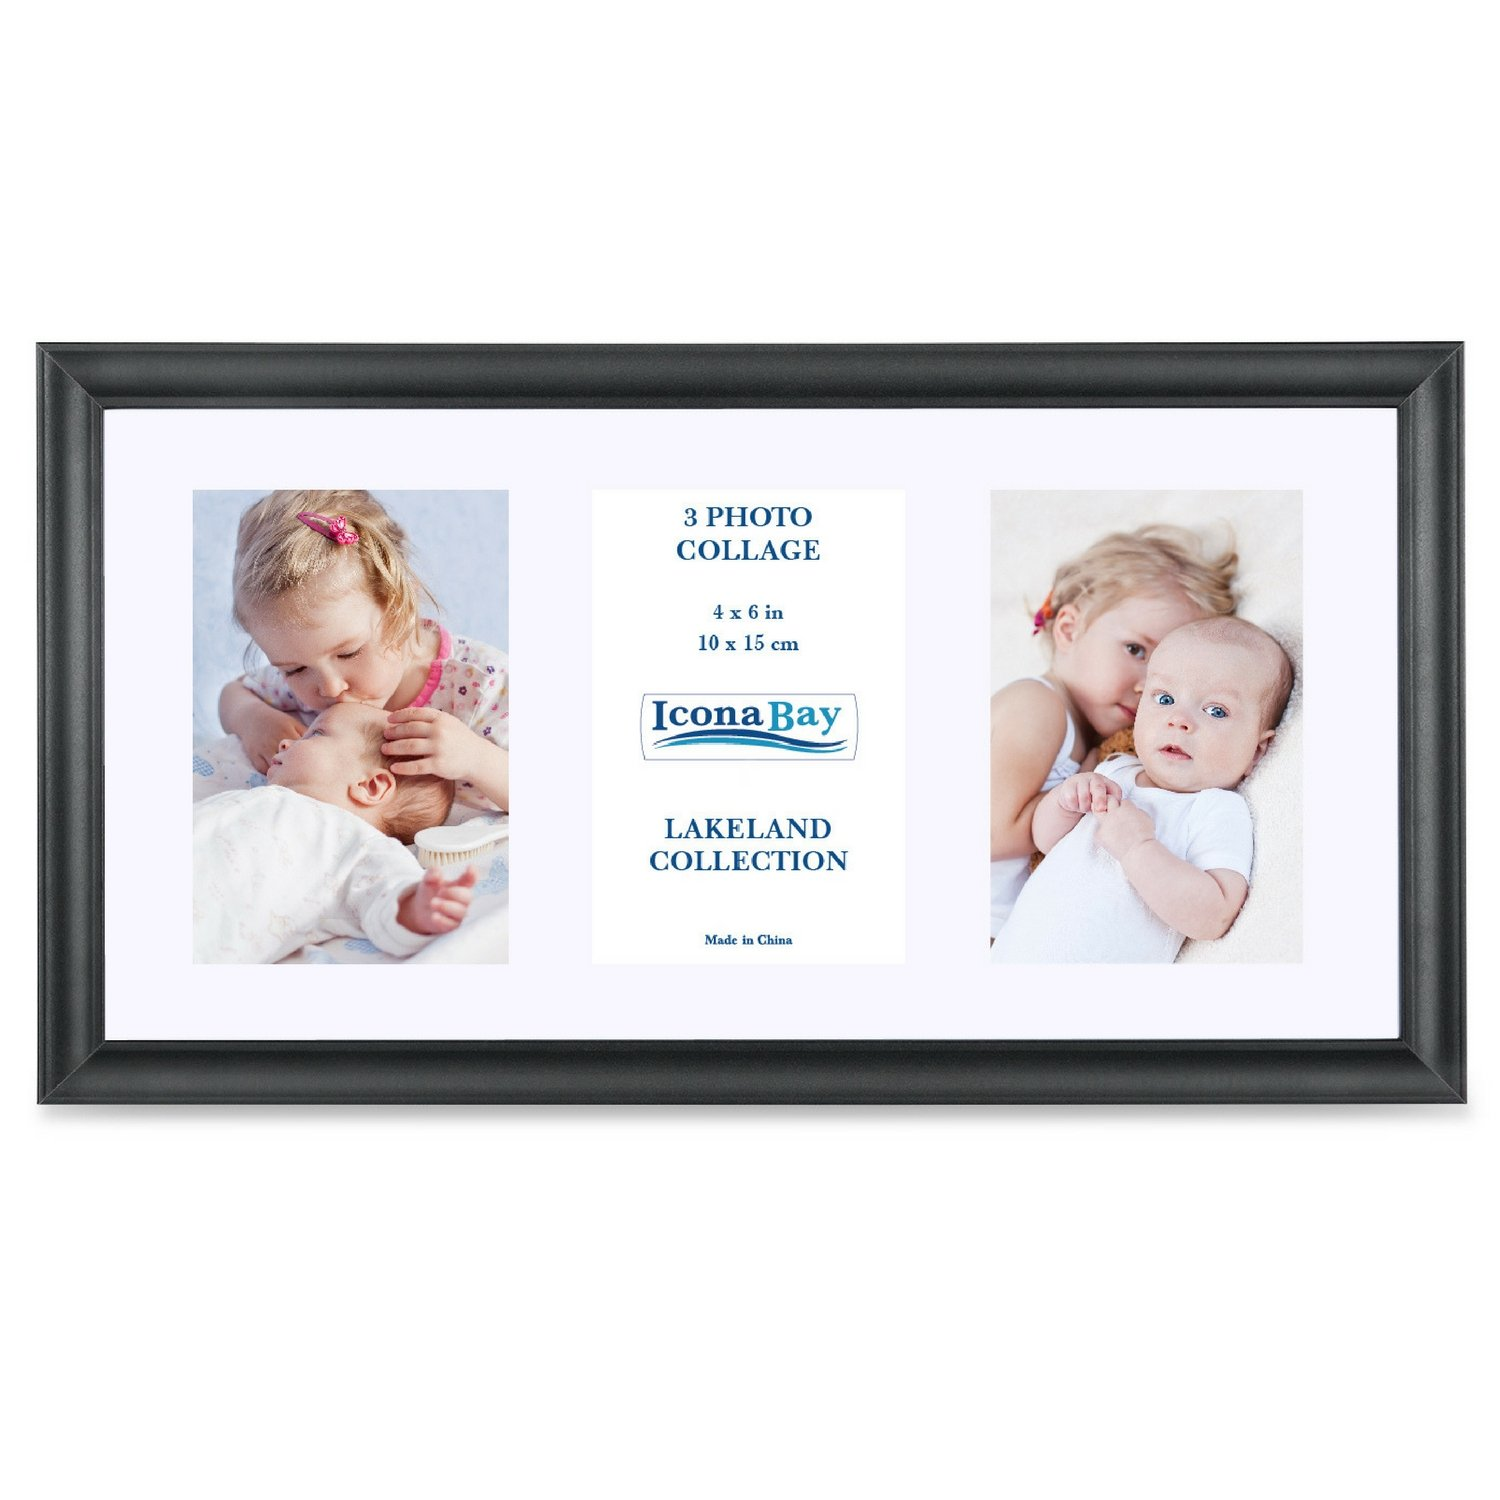 Icona Bay 8x16 Picture Frames Collage with Mat Displays Three 4x6 Photos (2 Pack), Black Frame, Wood Finish Frame, Photo Collage Frames for Walls or Table, Mat 4x6 Included, Lakeland Collection